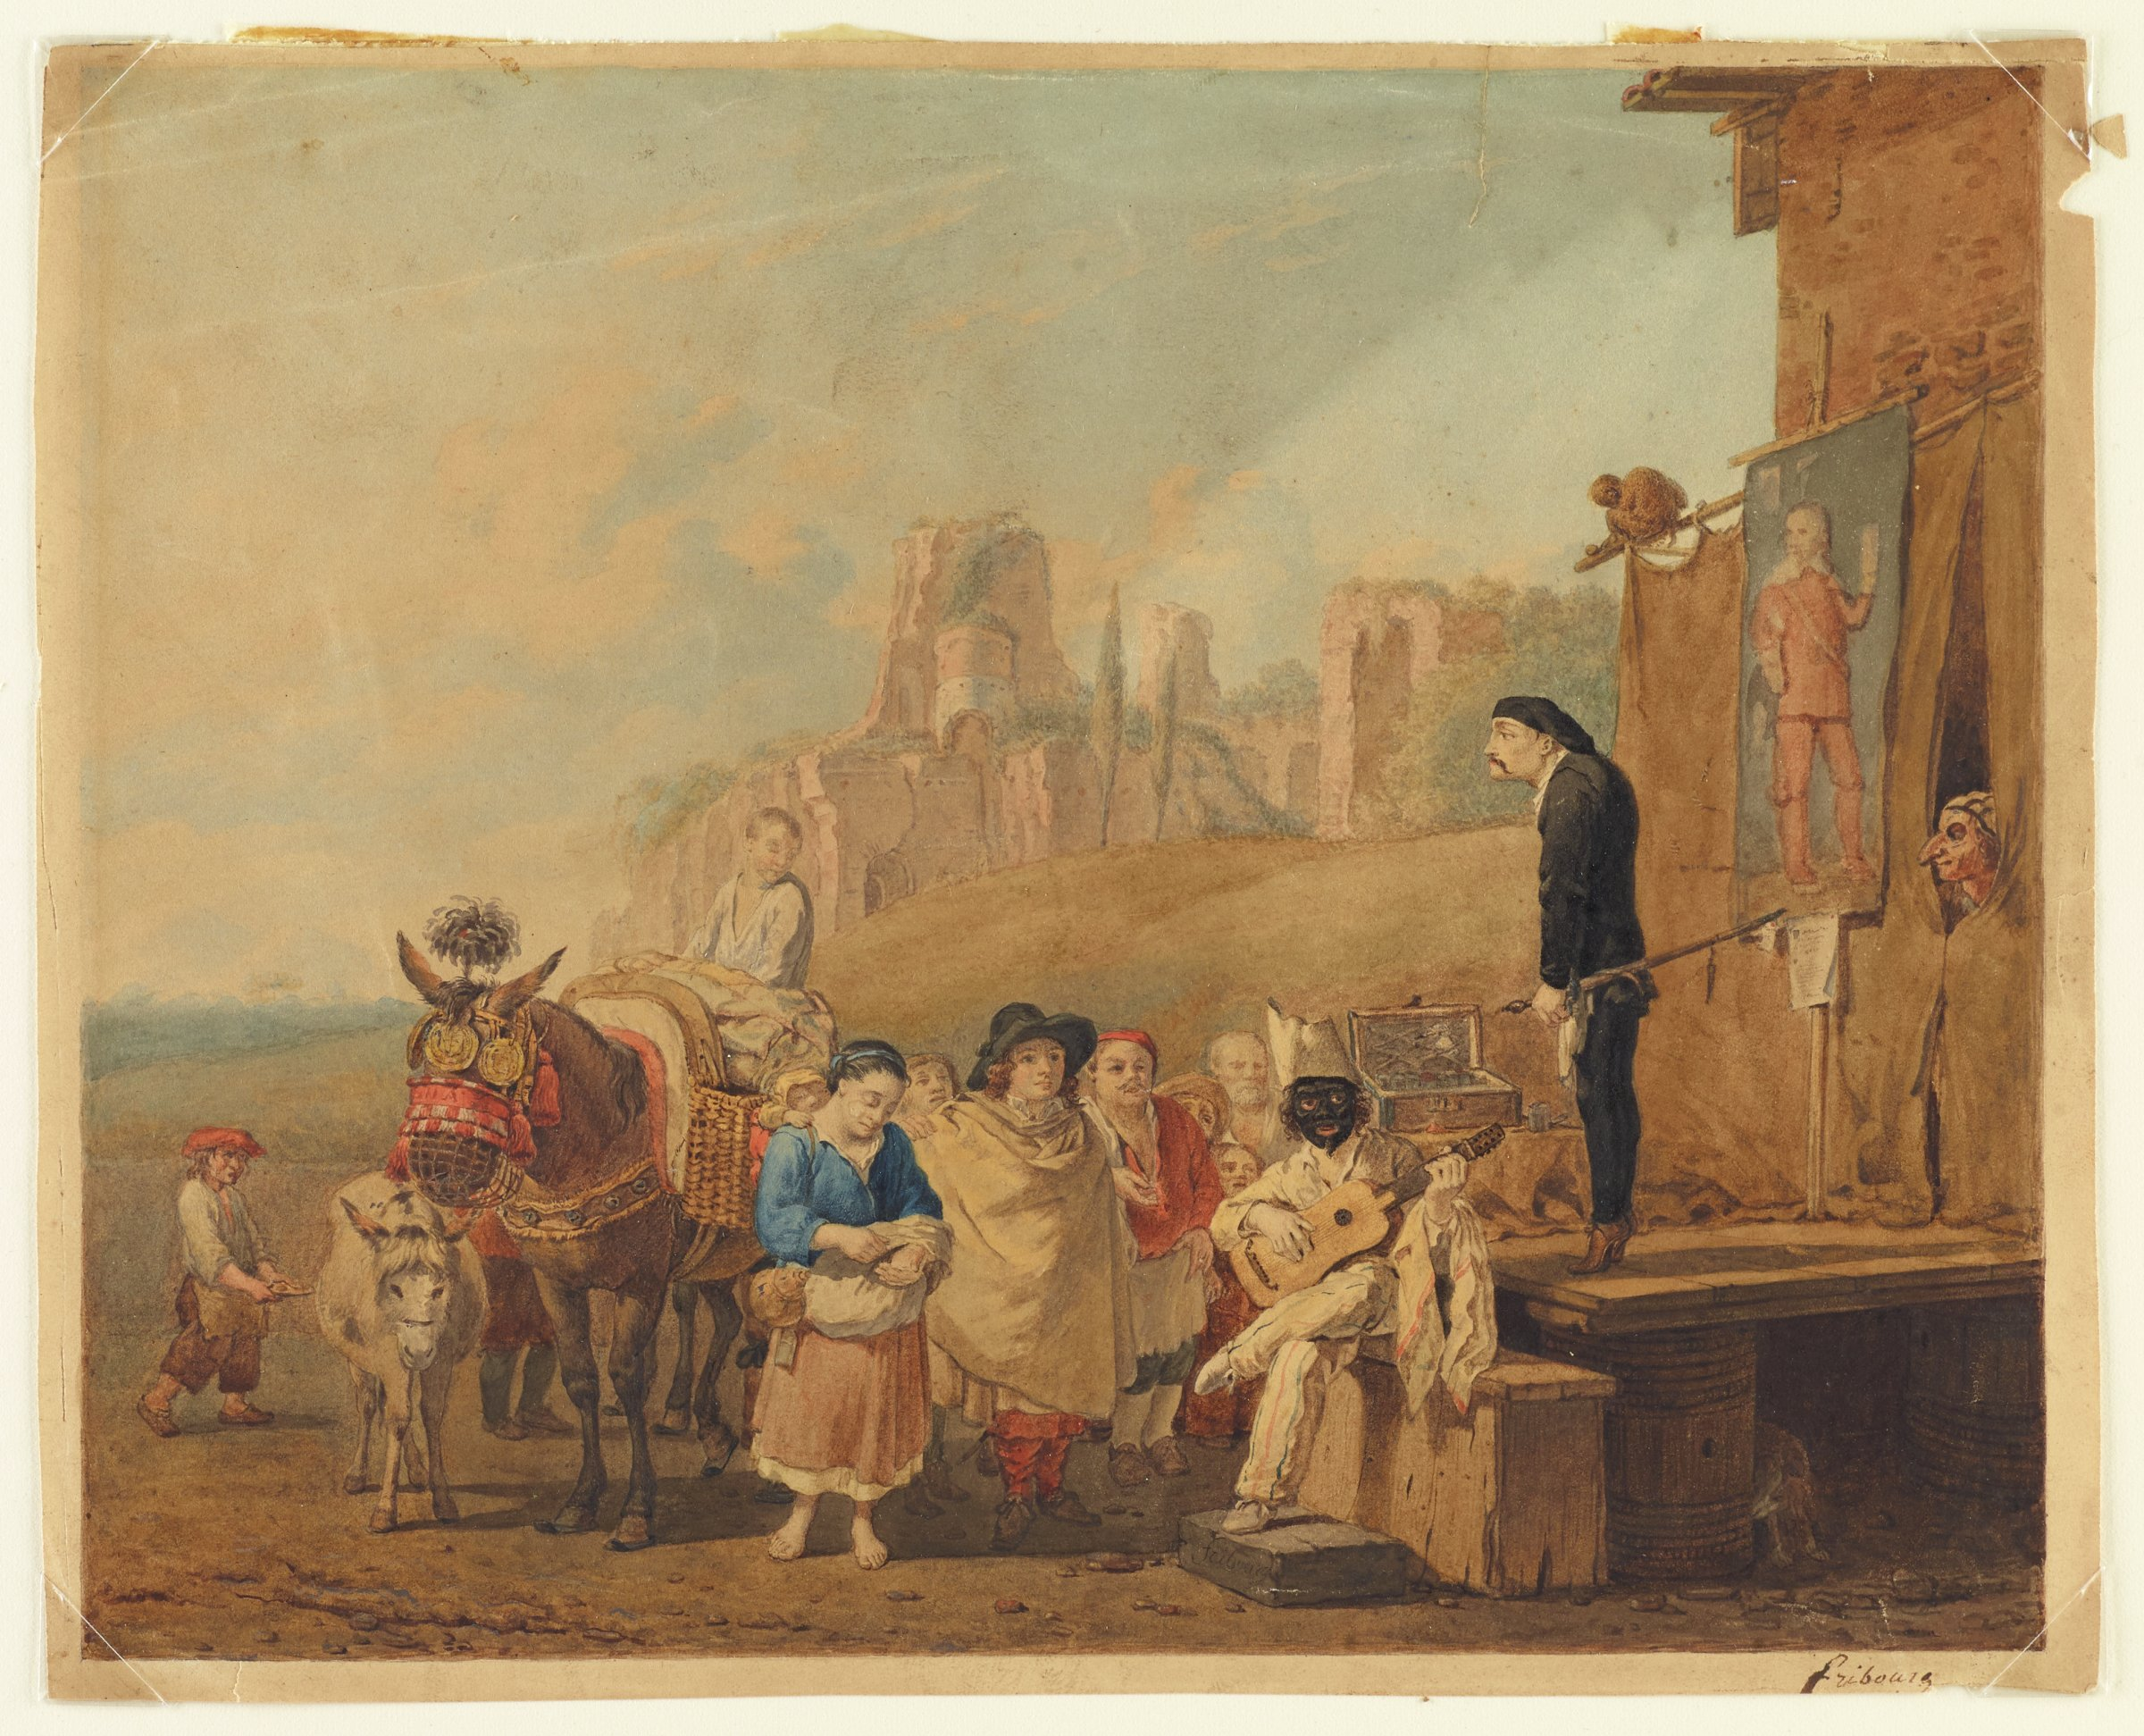 Villagers gather and listen to a man near the center of the composition in a black mask play guitar. A man dressed in all black stands on a small stage. Another man peaks out of a curtain on the right. In the background sits a city in ruins on a grassy hill.